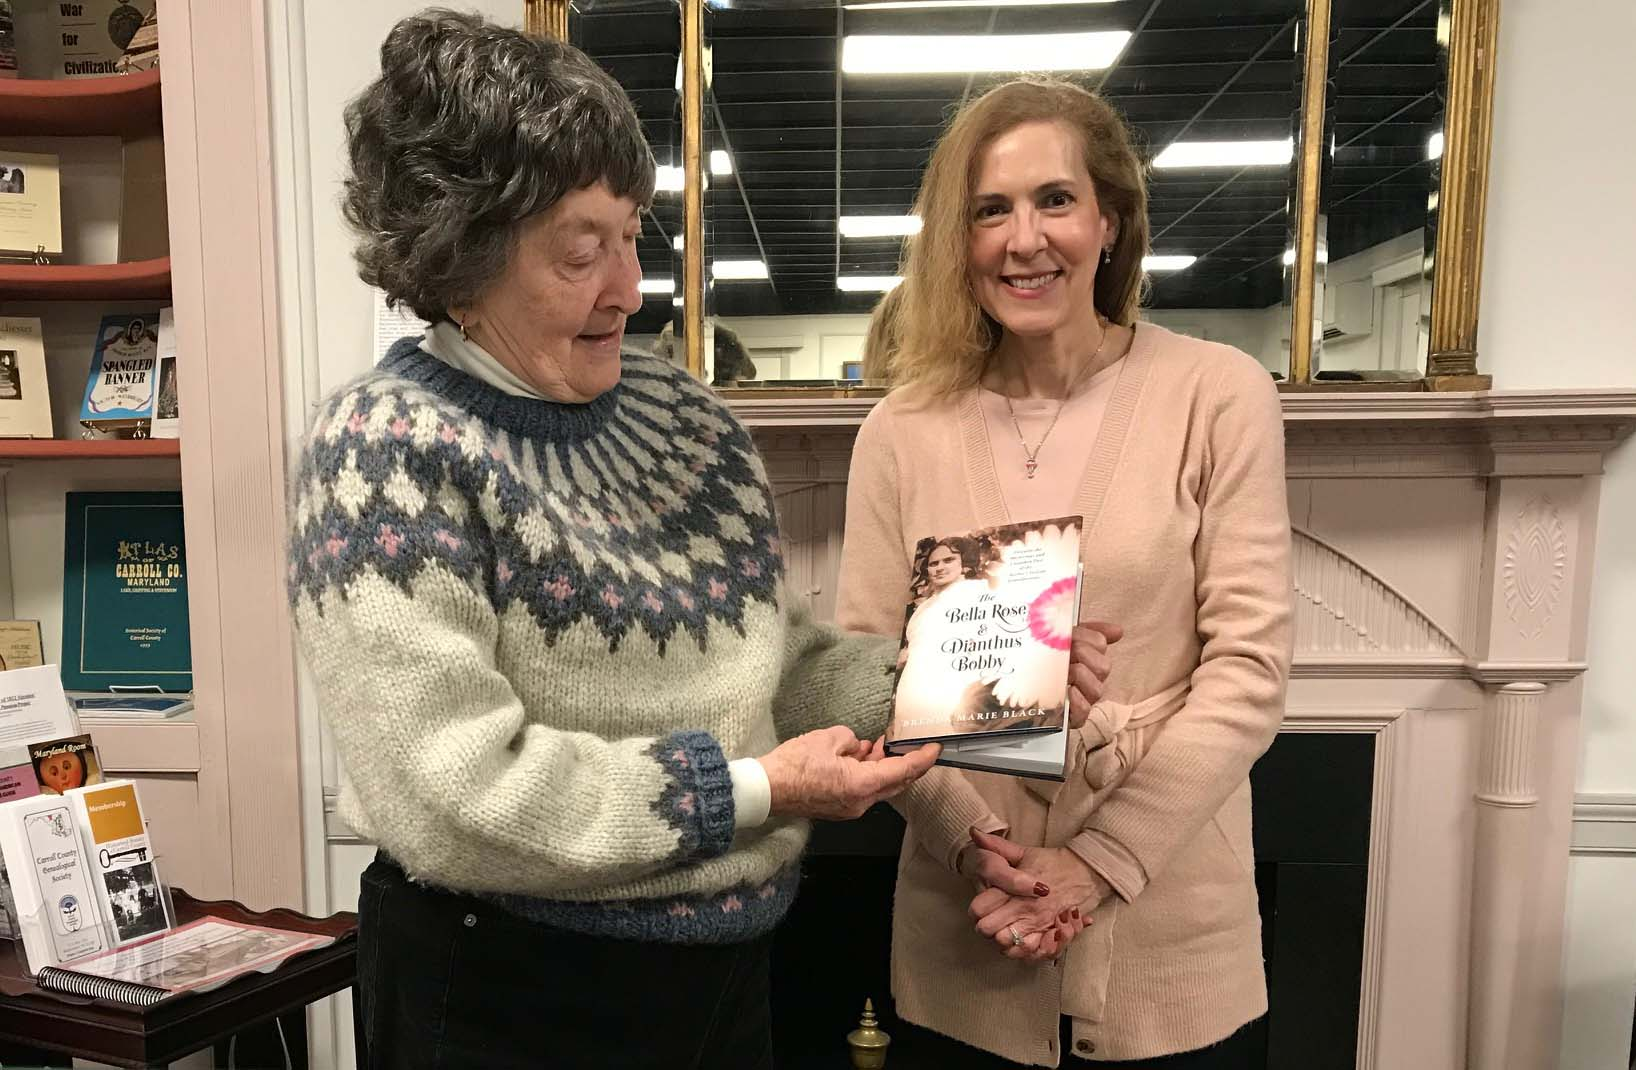 'Historical Society of Carroll County Helped Fulfill My Dream'